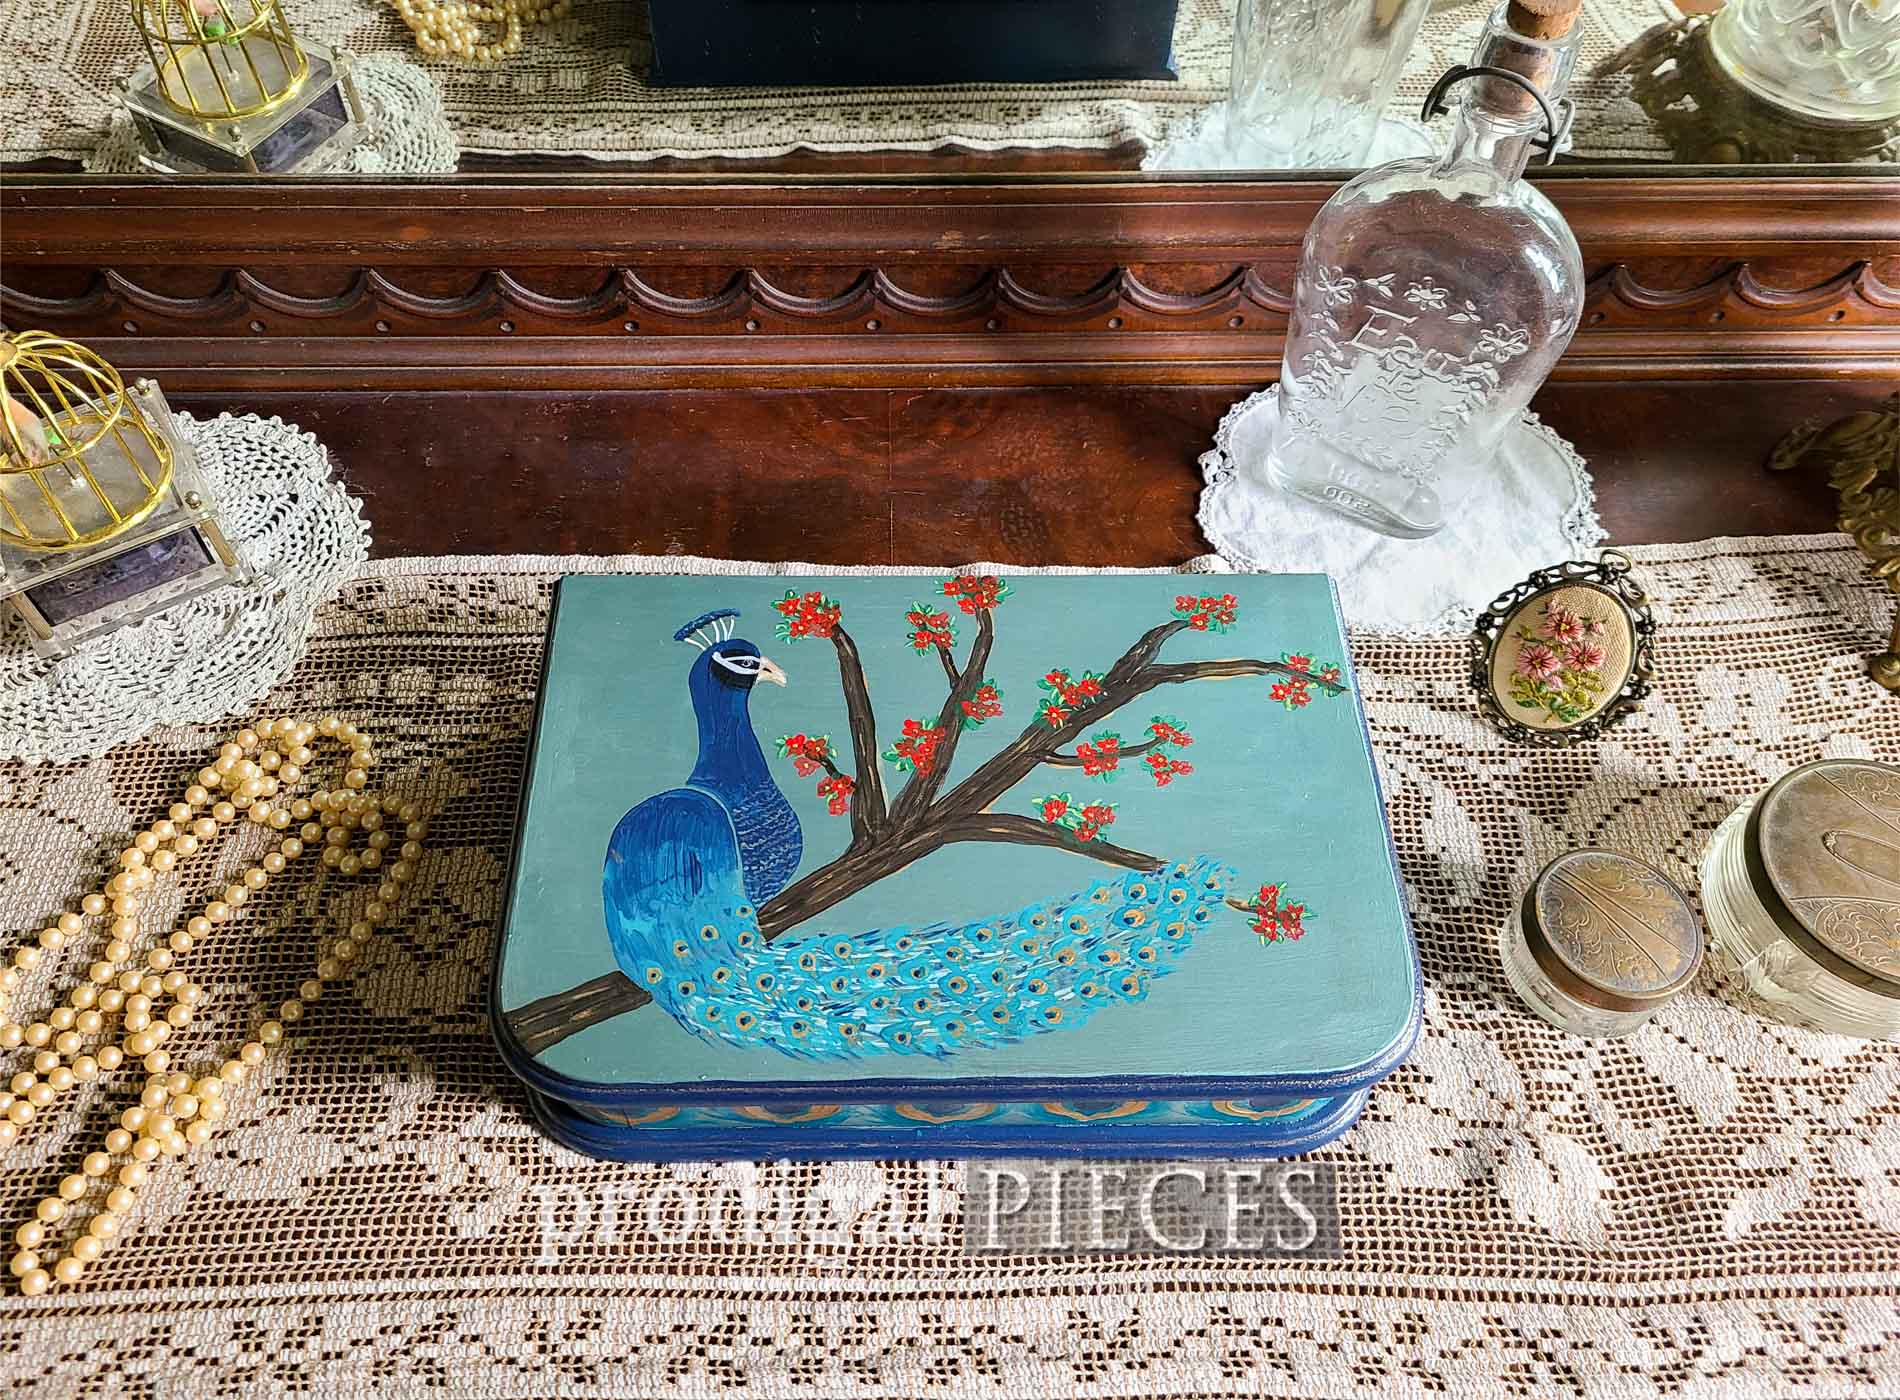 Featured Vintage Jewelry Box Makeover with Peacock Styling by Larissa of Prodigal Pieces | prodigalpieces.com #prodigalpieces #vintage #home #homedecor #handmade #peacock